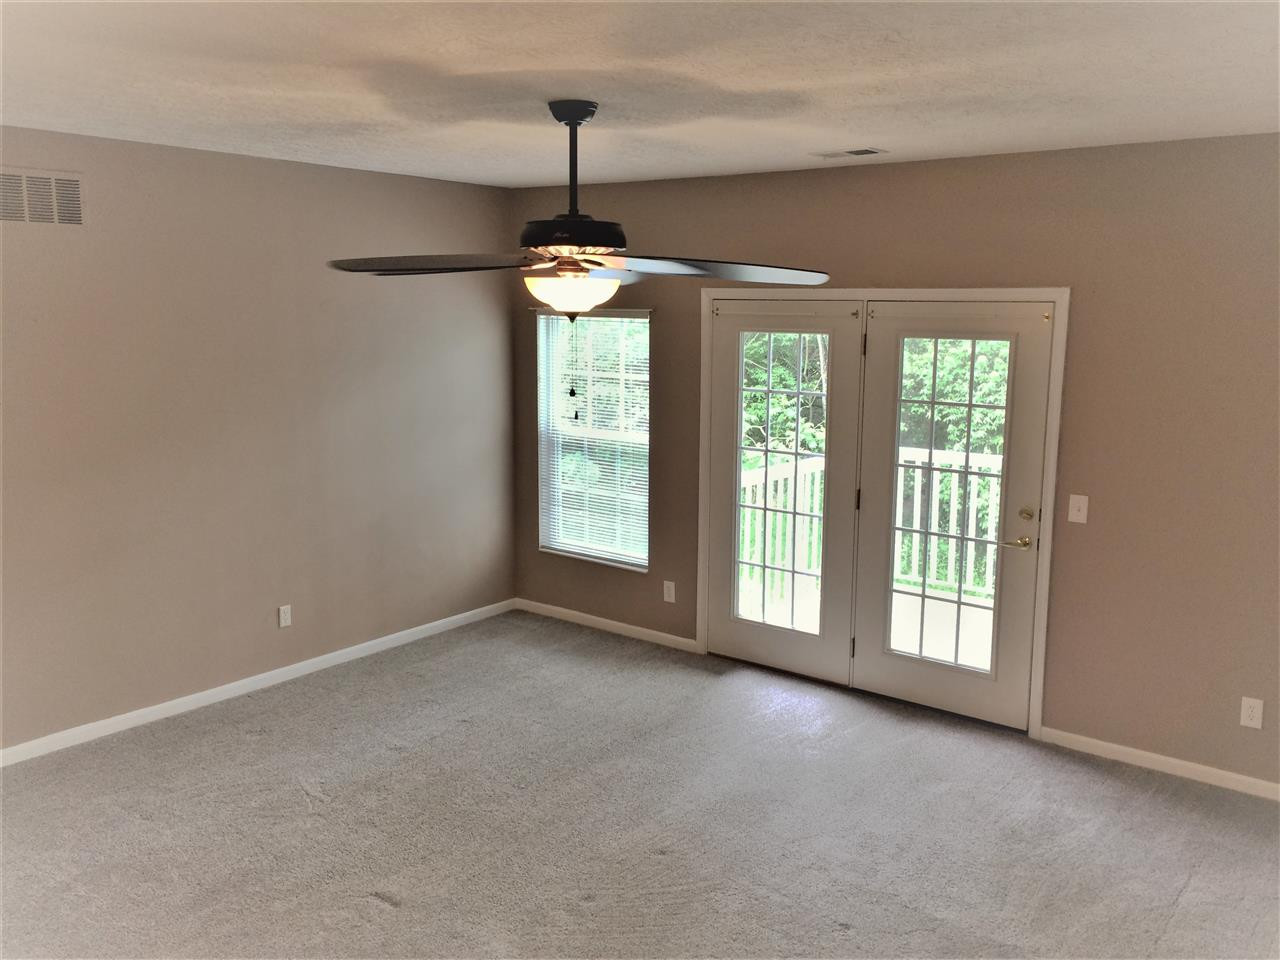 Photo 2 for 551 Ivy Ridge Dr, 10 Cold Spring, KY 41076